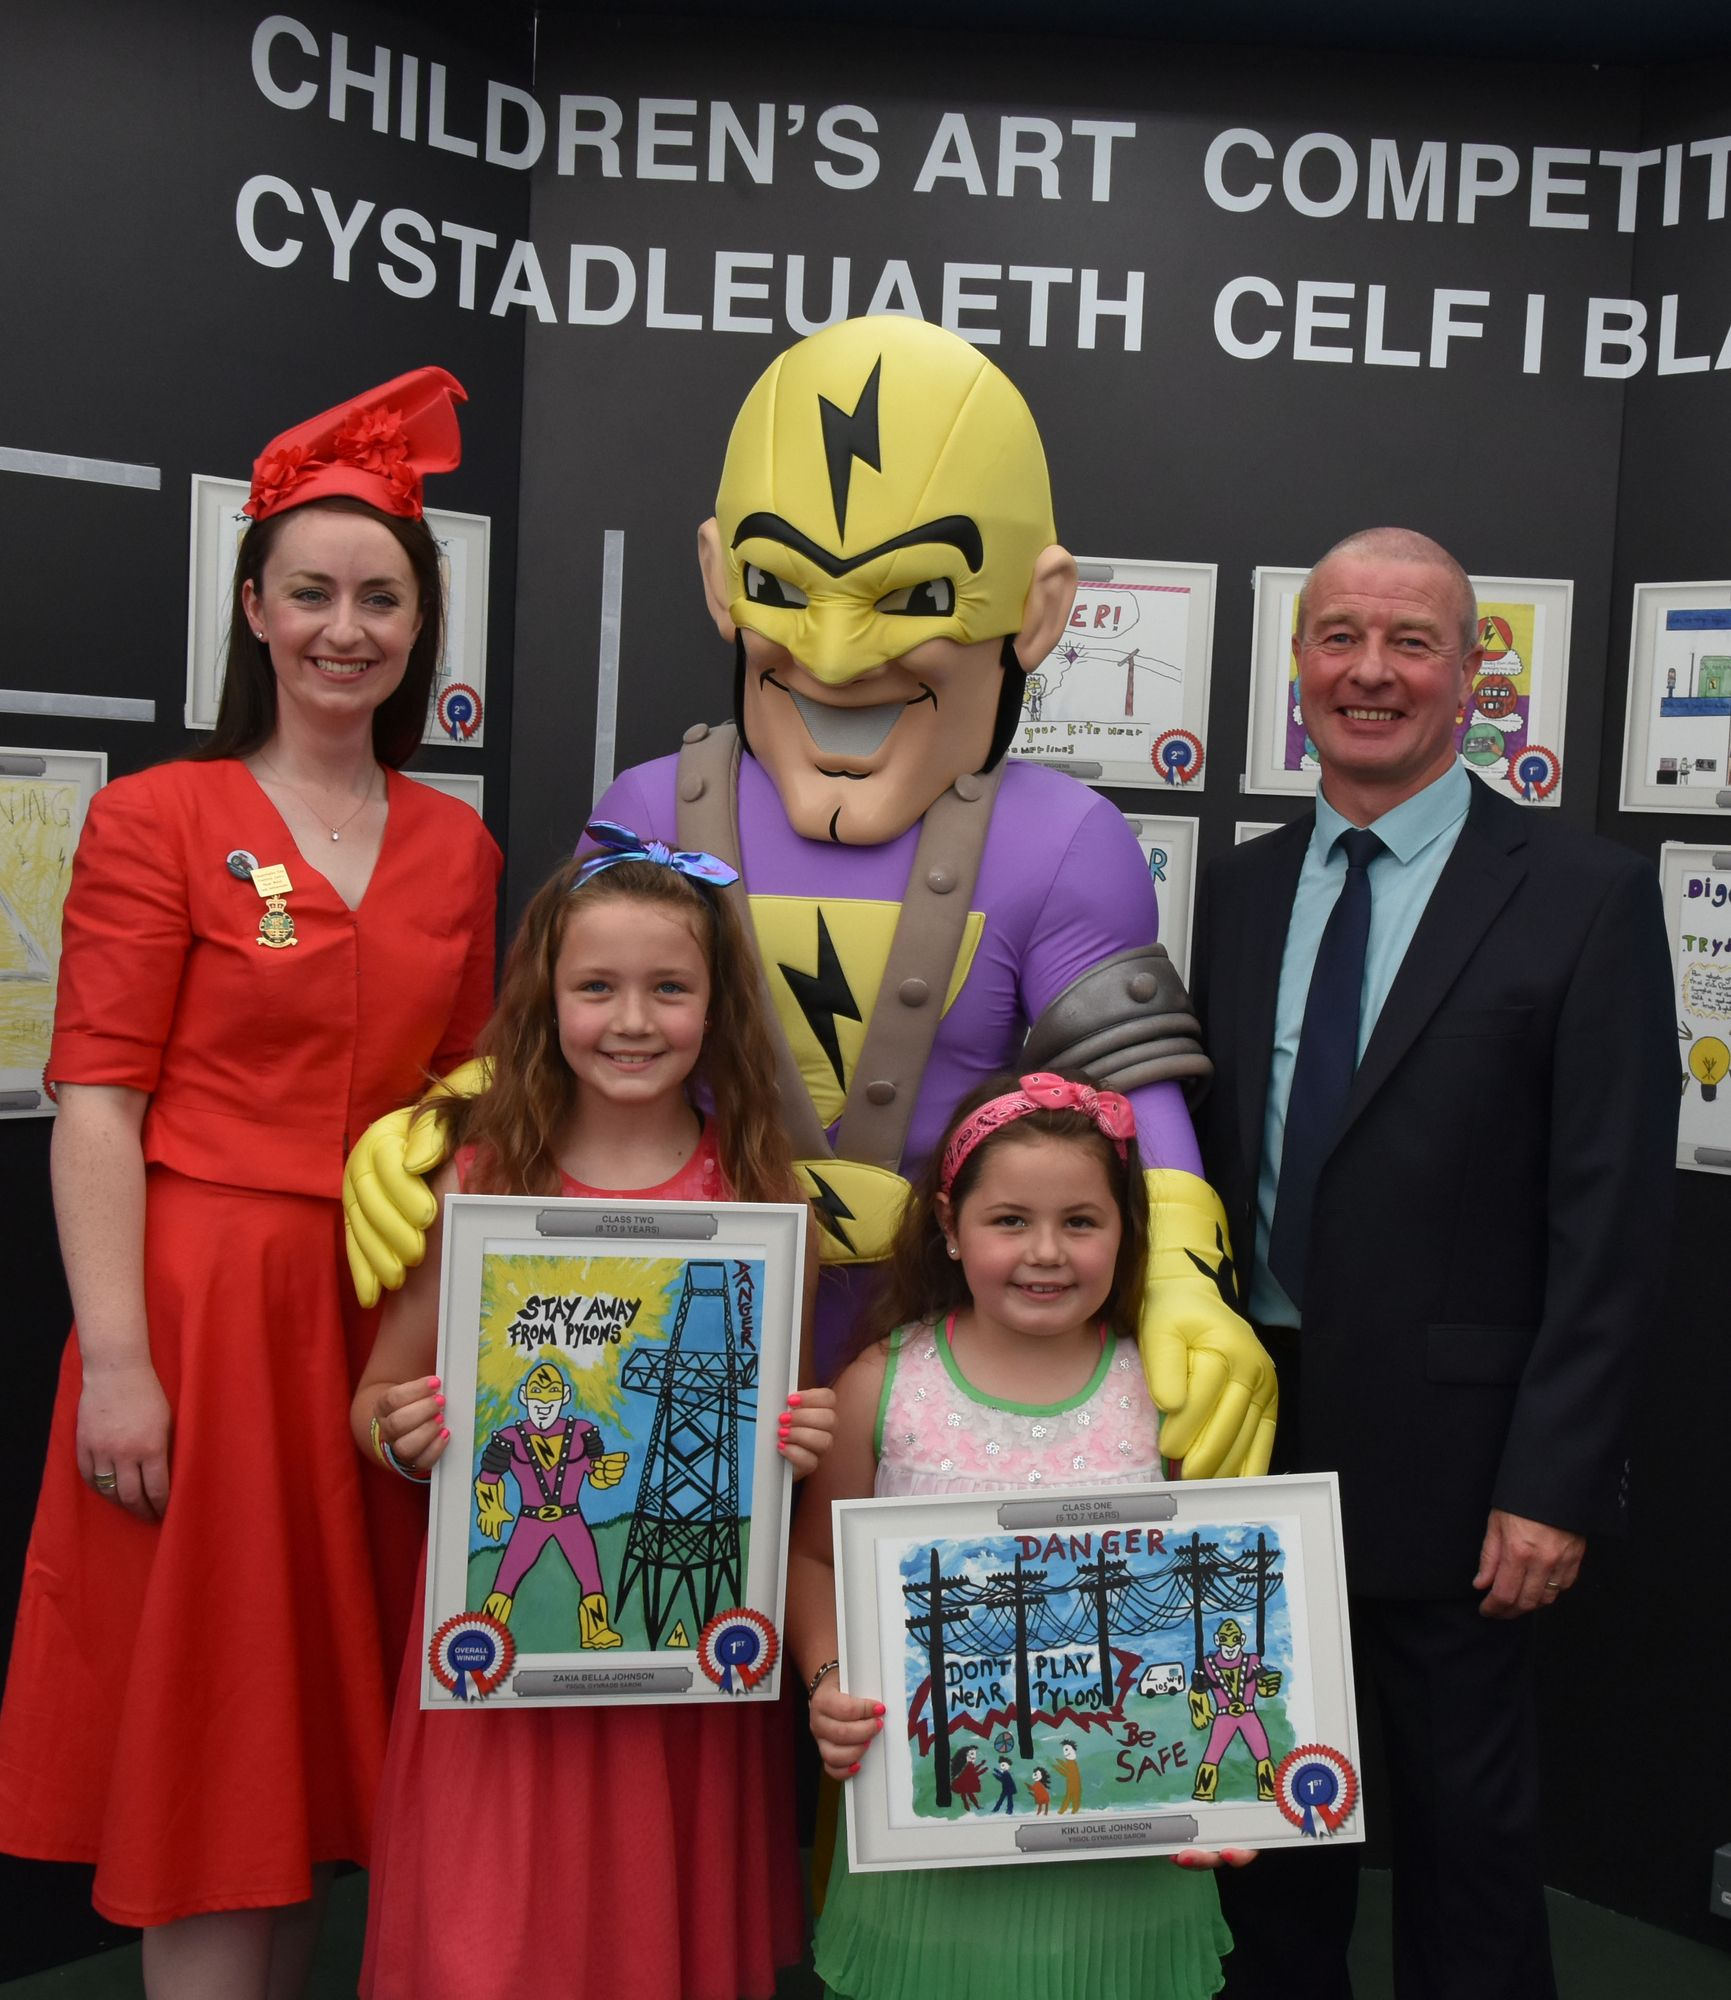 Western Power mascot poses with prize winning kids